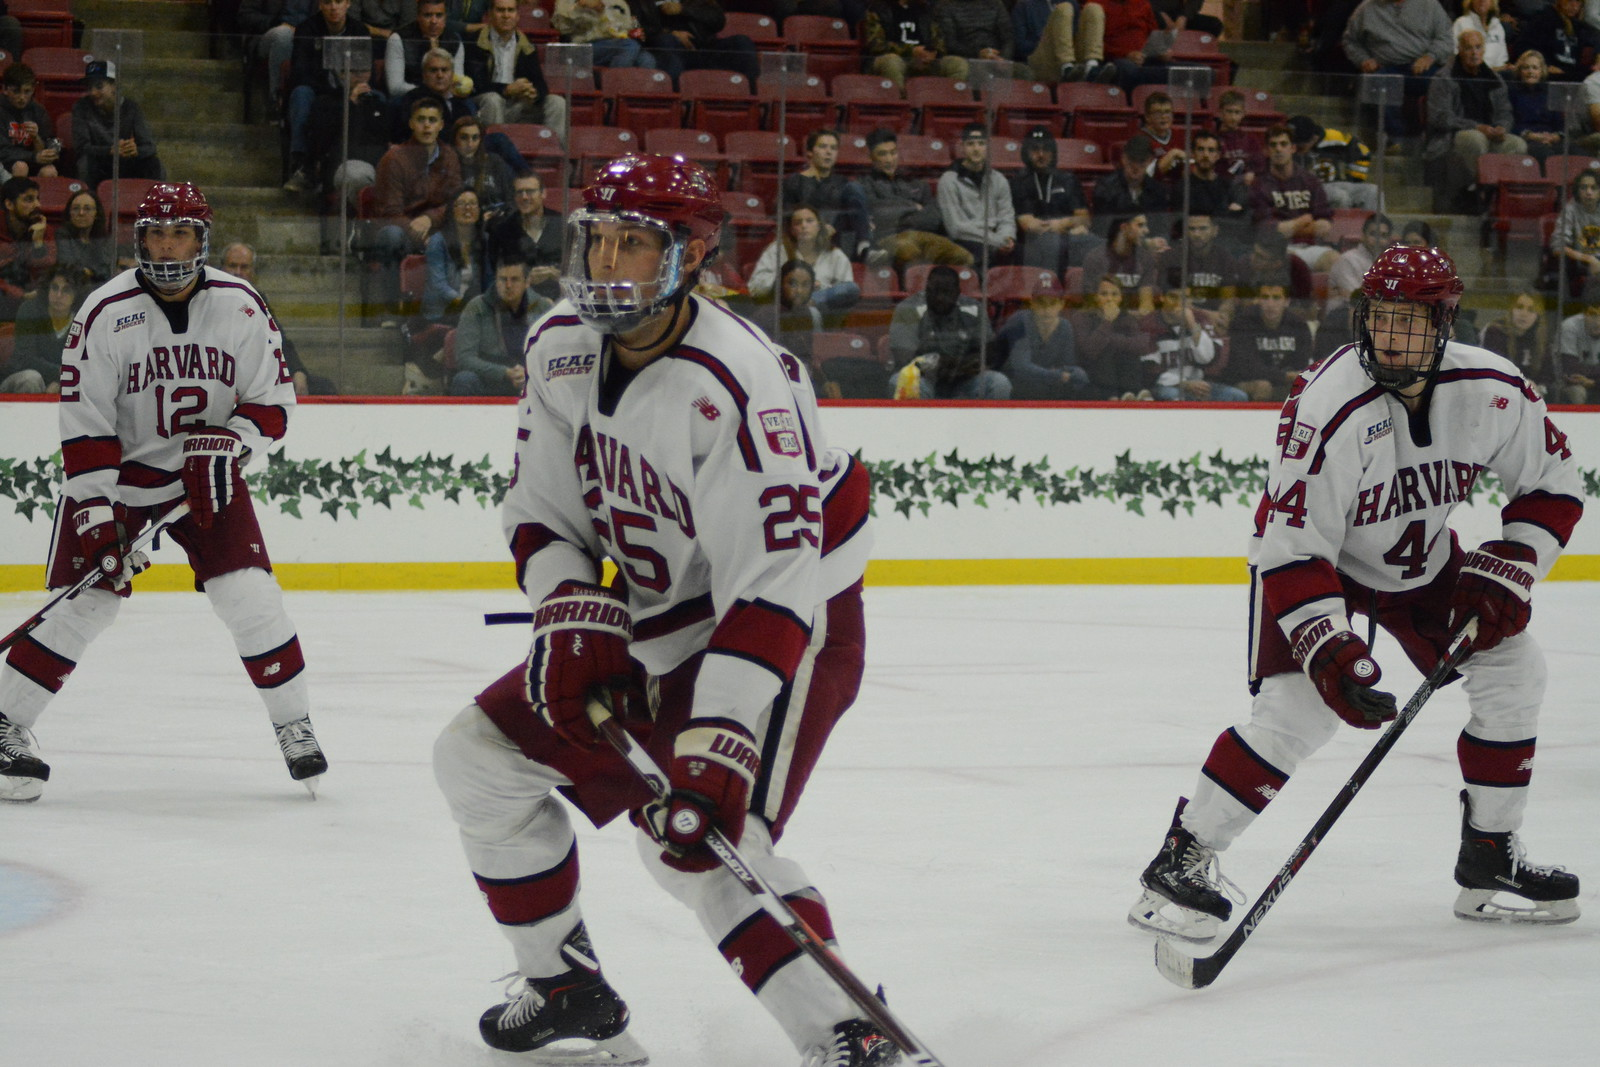 Harvard will kick off the road portion of its schedule with a weekend trip to upstate New York. Saturday's showdown with Cornell marks the start of the Crimson's most challenging stretch of games all season.